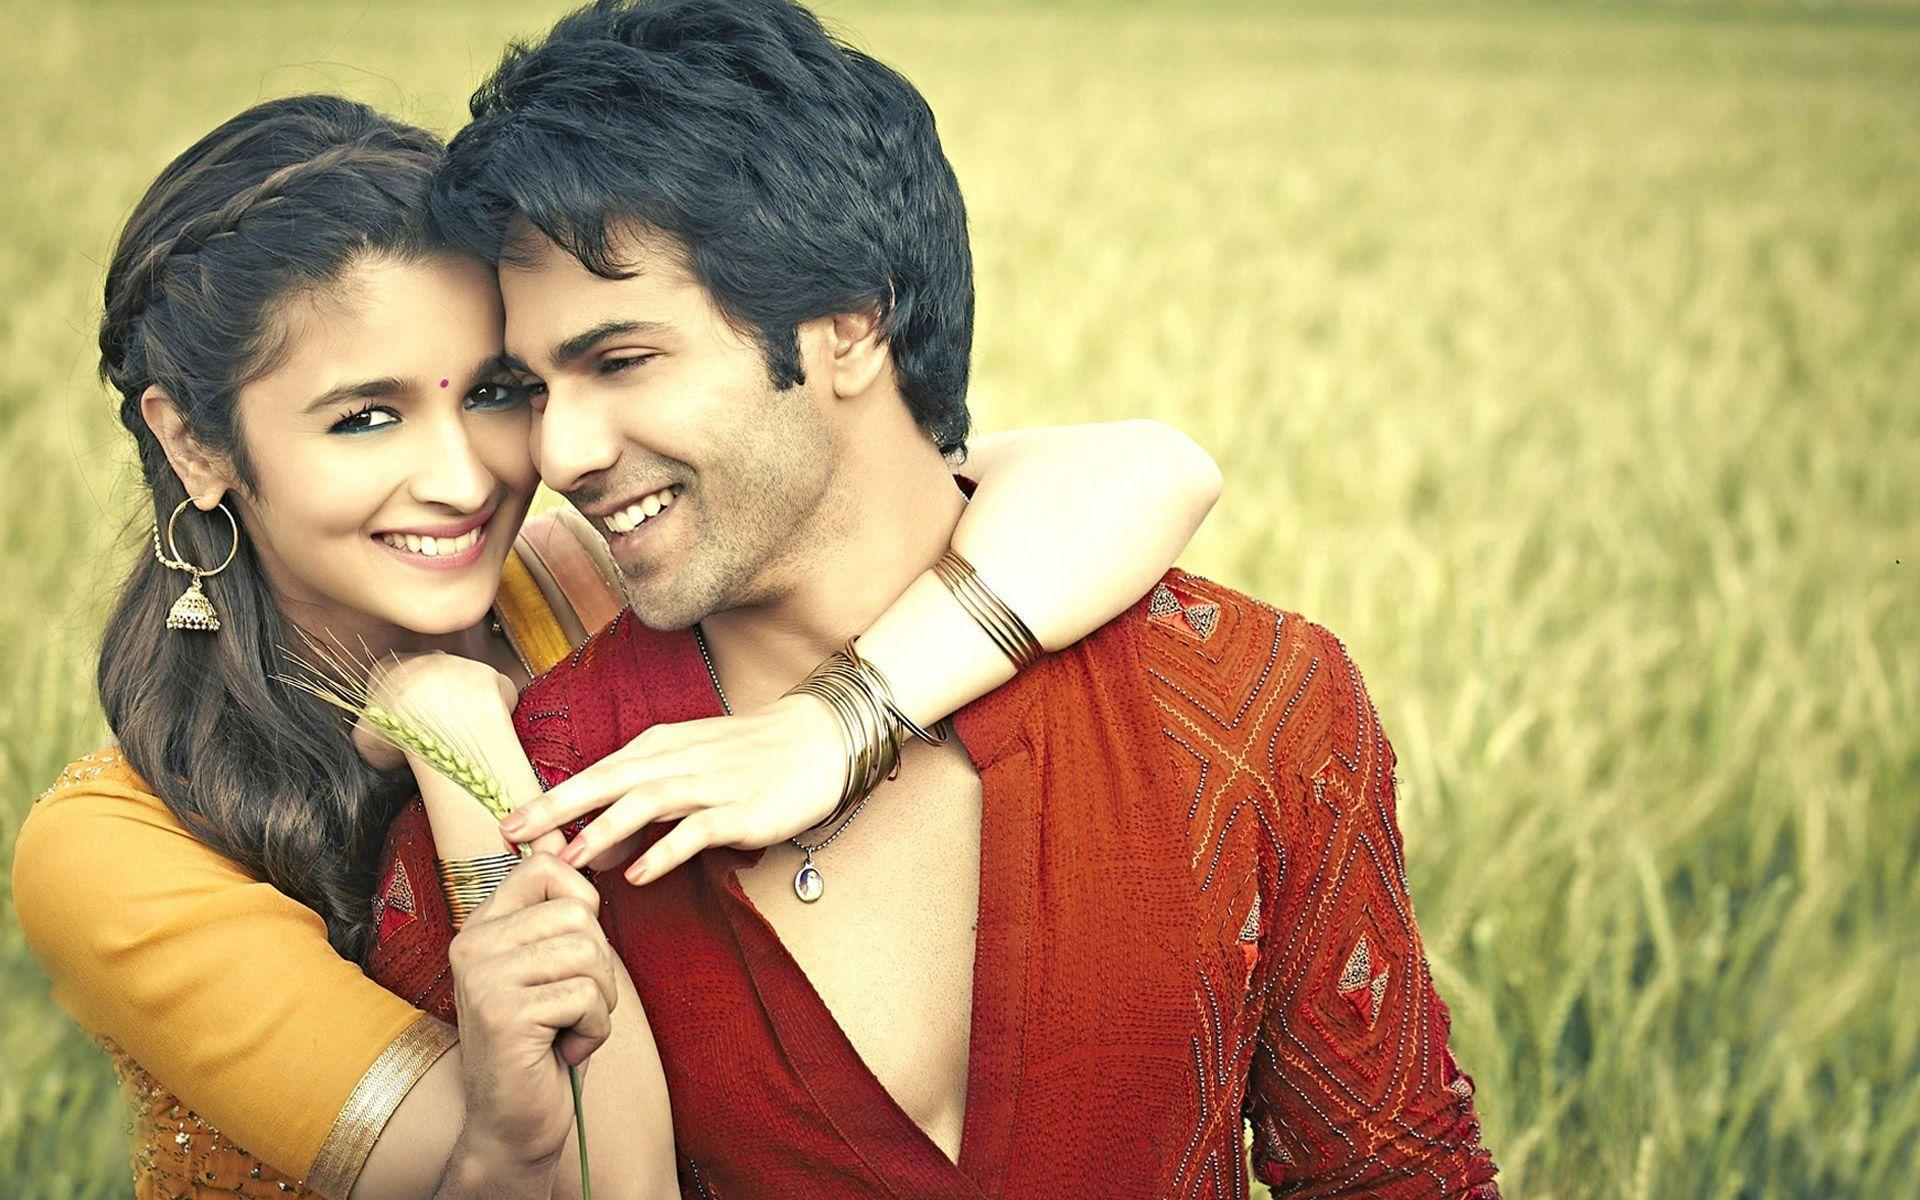 Romantic Pictures Of Couples Wallpapers